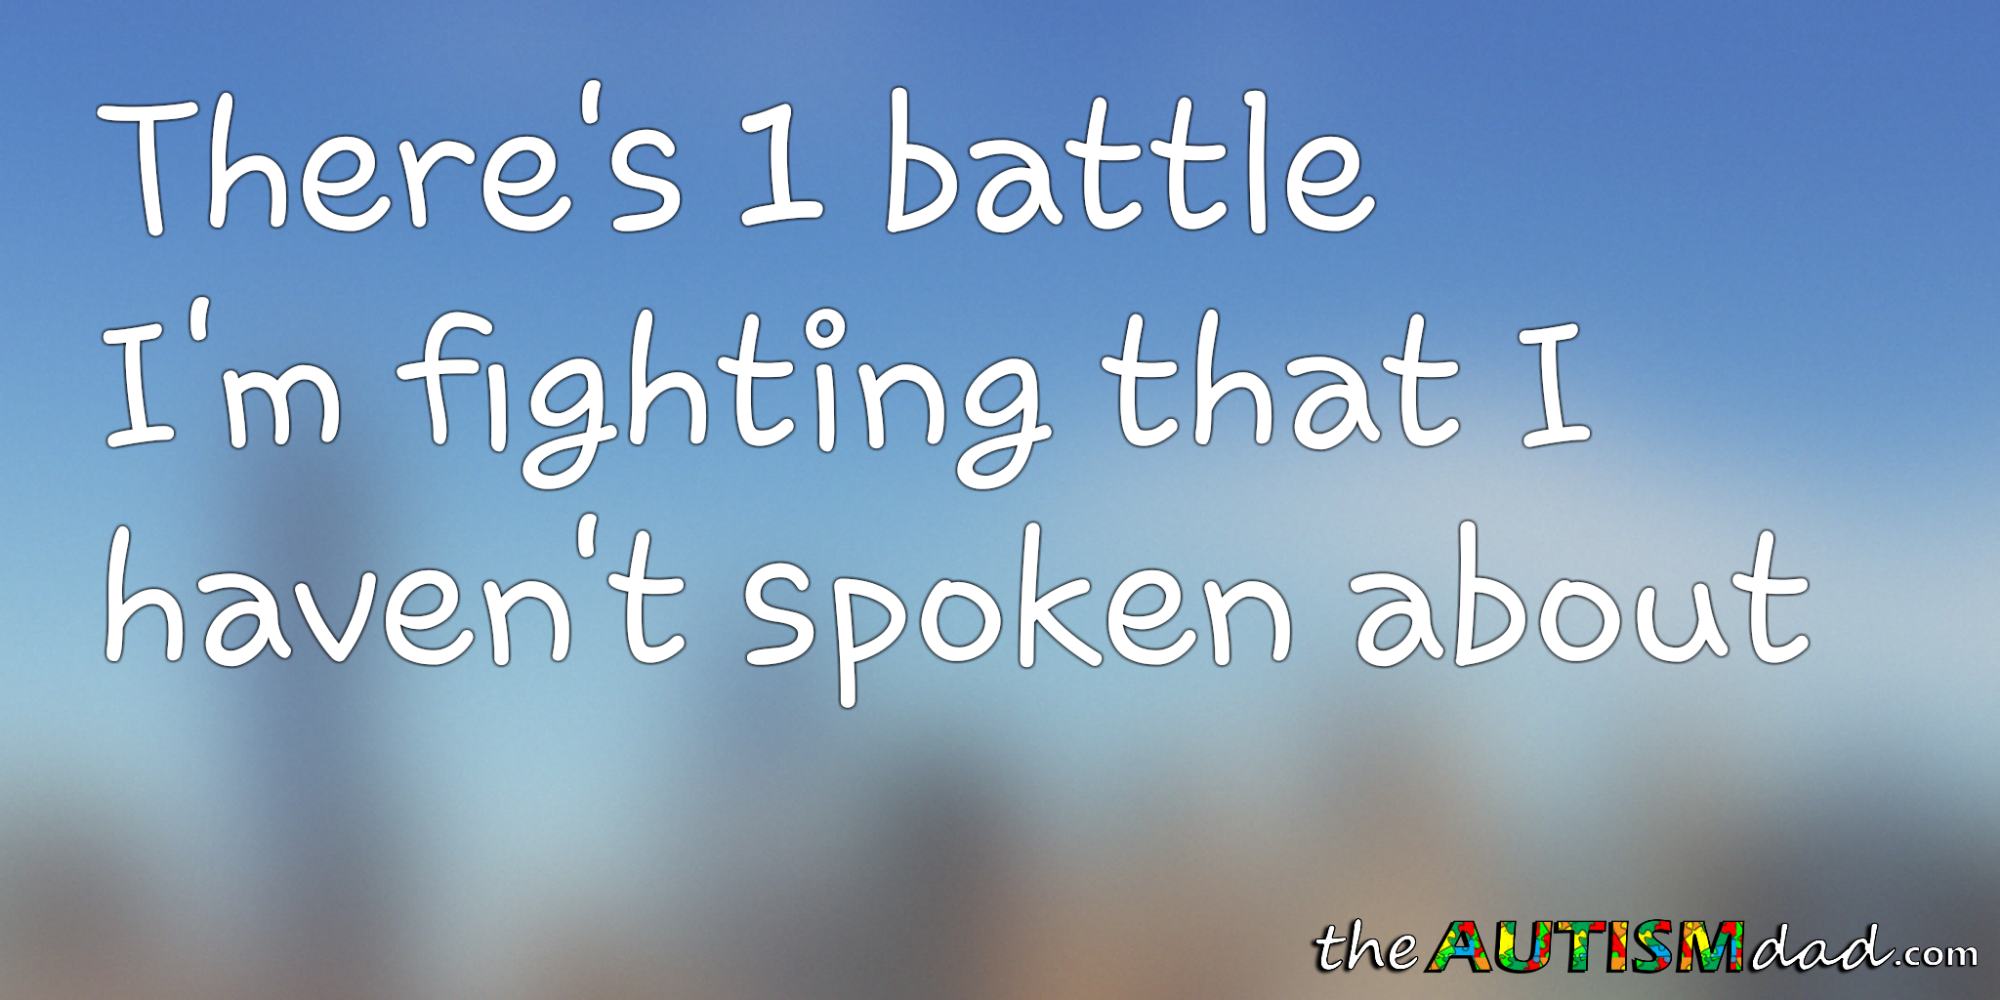 There's 1 battle I'm fighting that I haven't spoken about